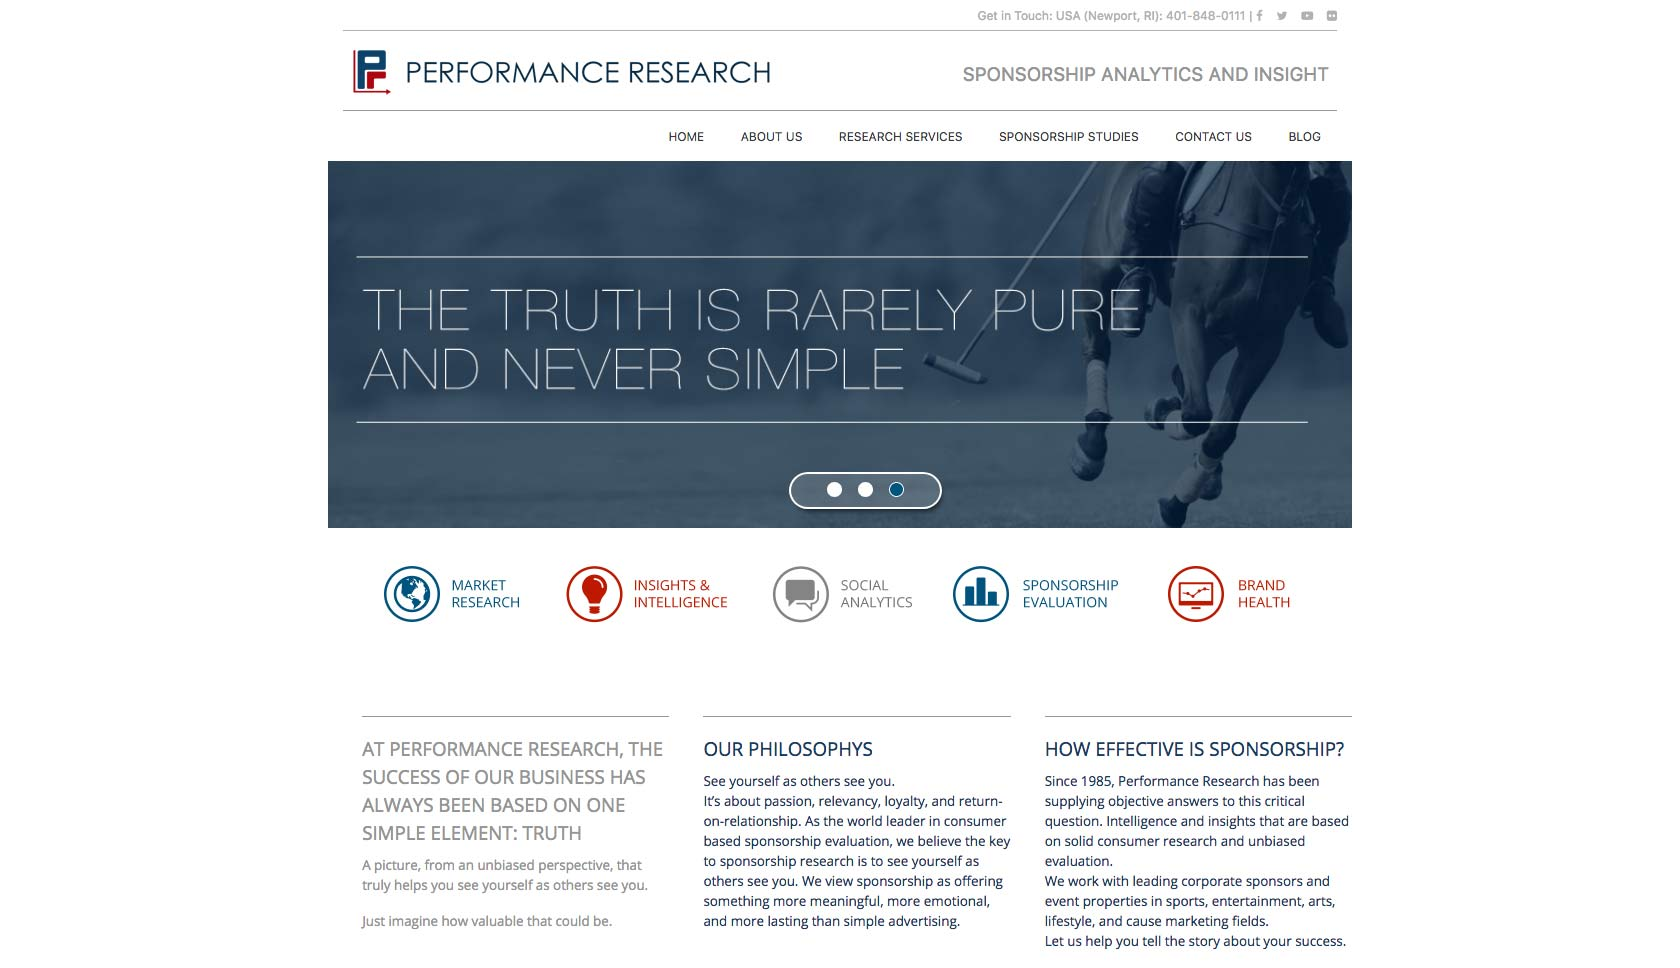 Performance Research image